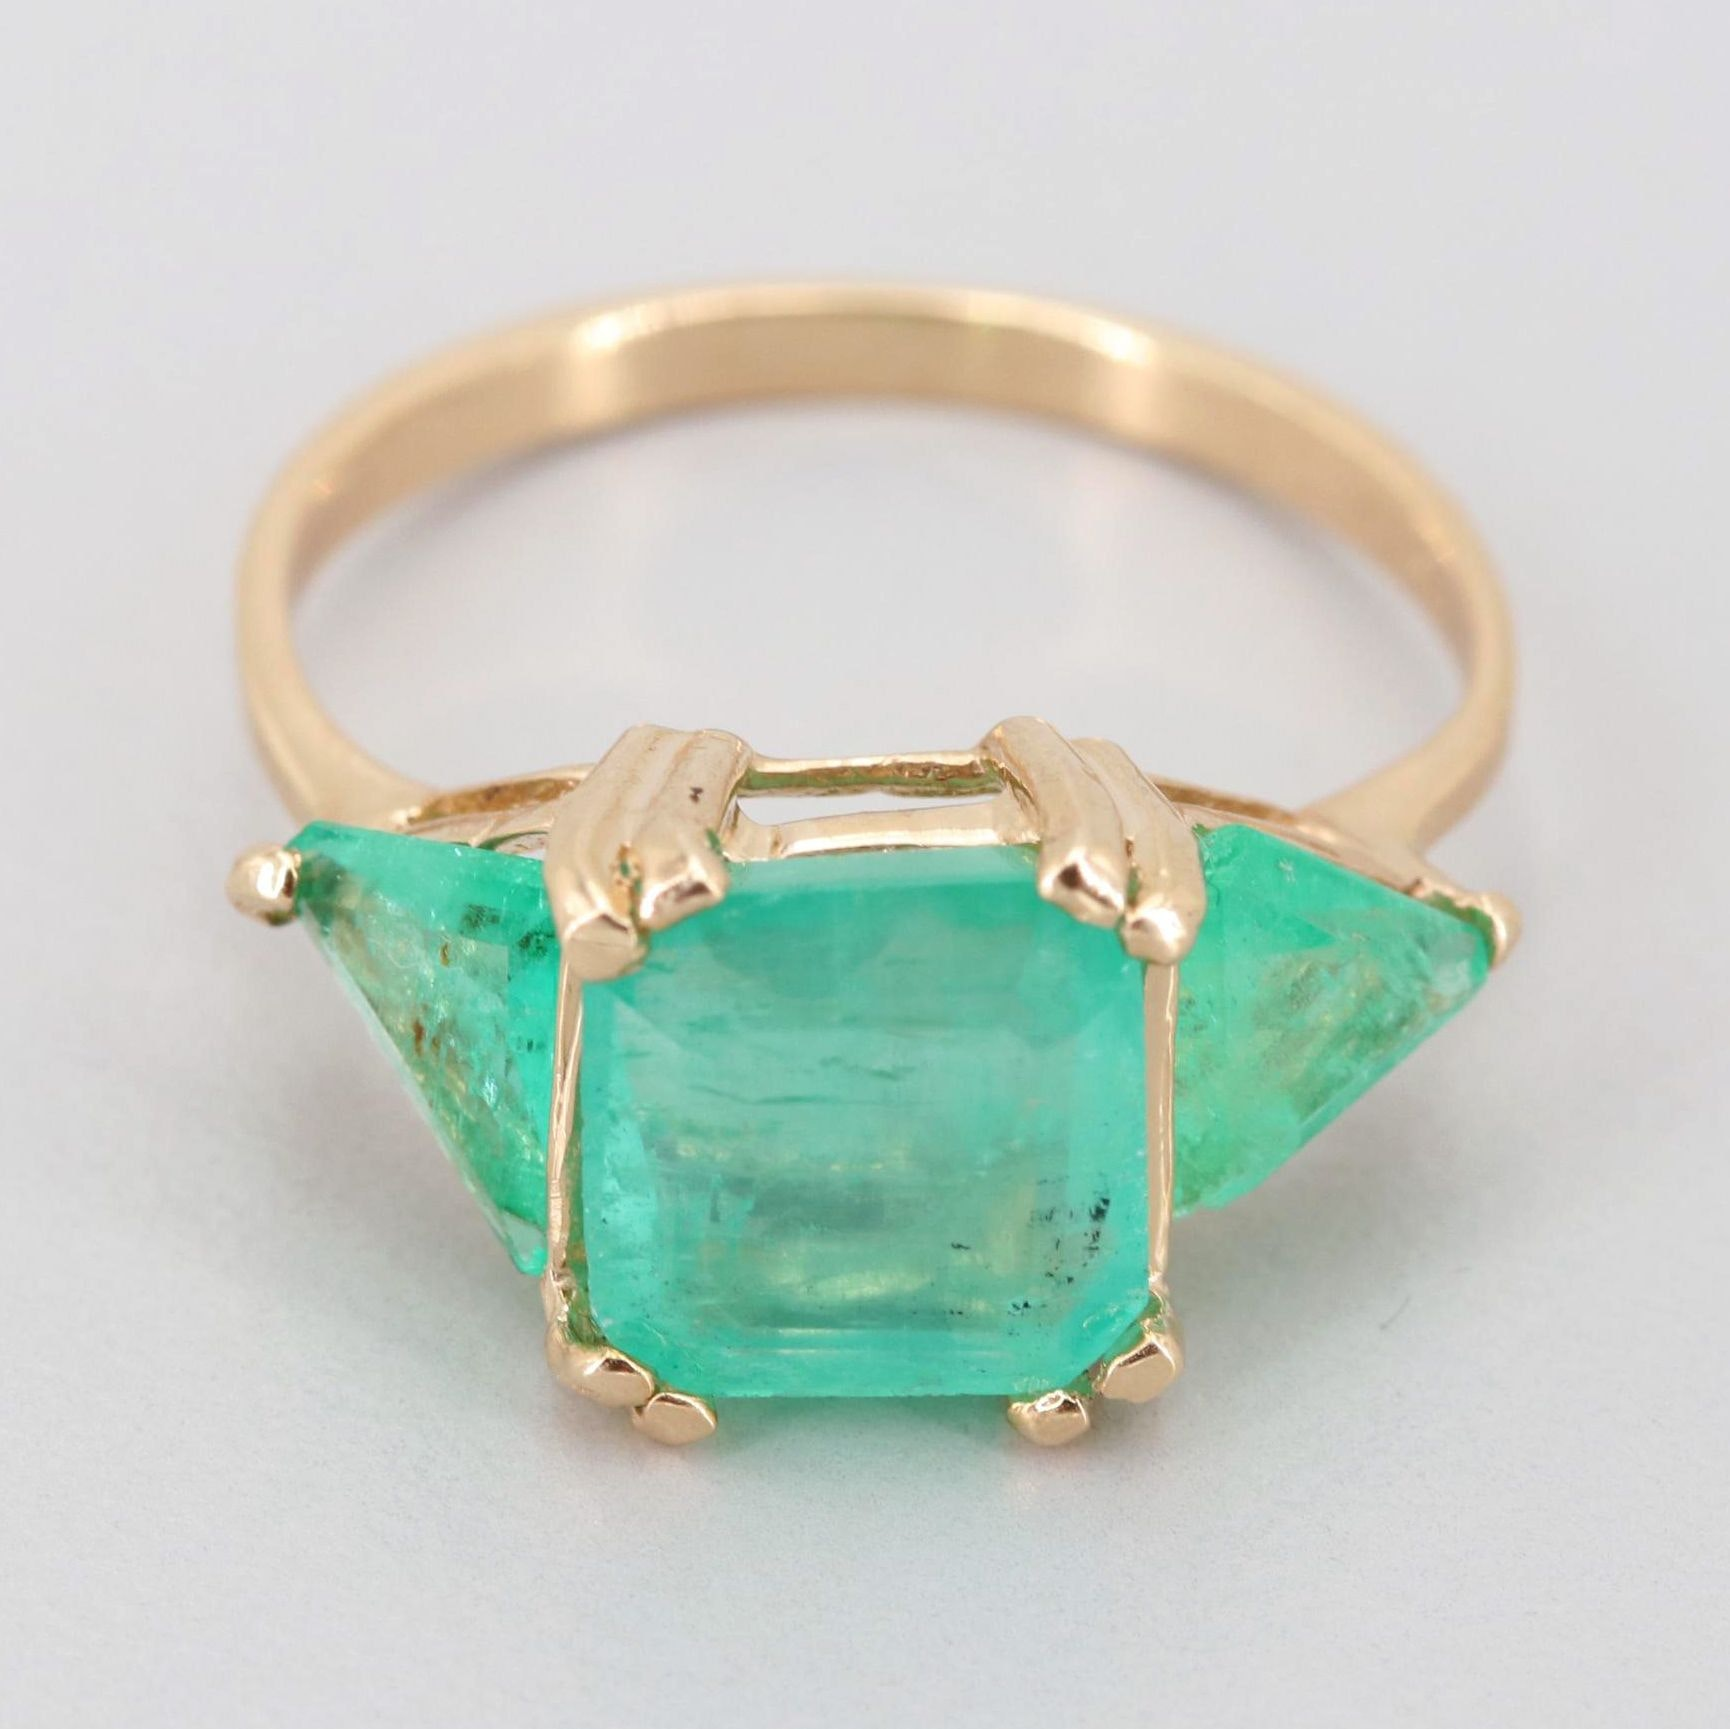 10K Yellow Gold 1.84 CT Emerald Ring